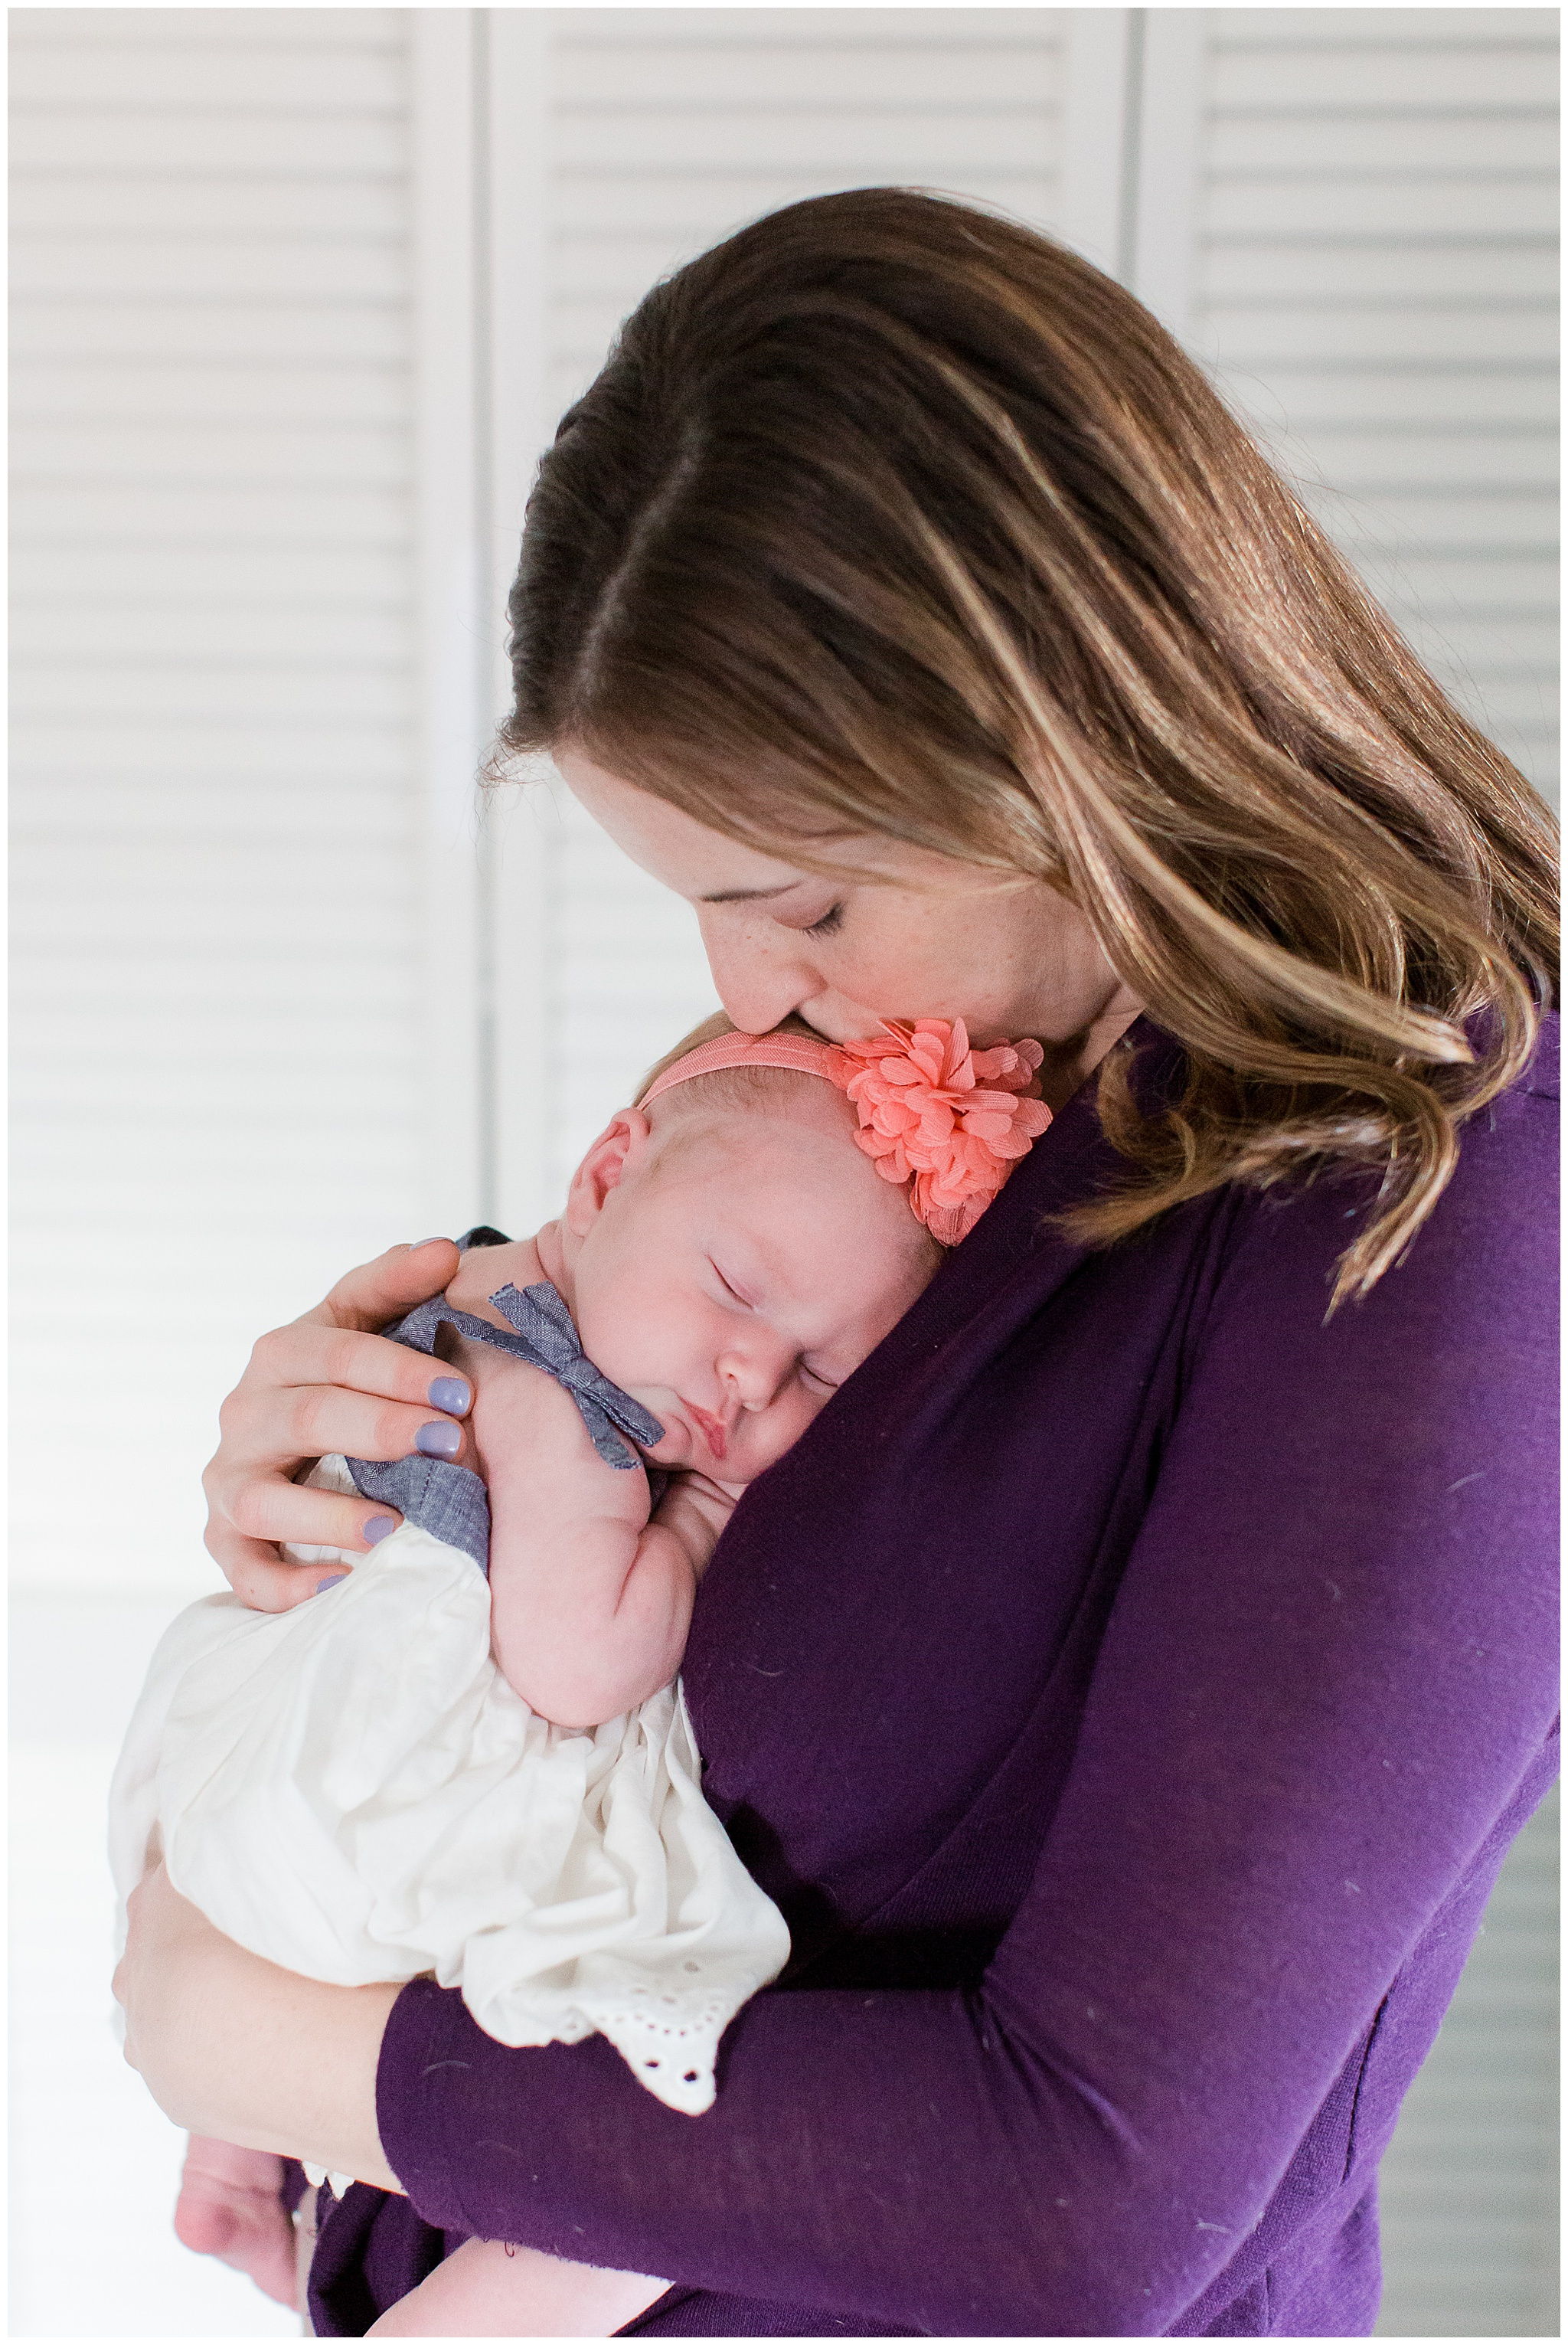 Obrock-newborn-session_0012.jpg